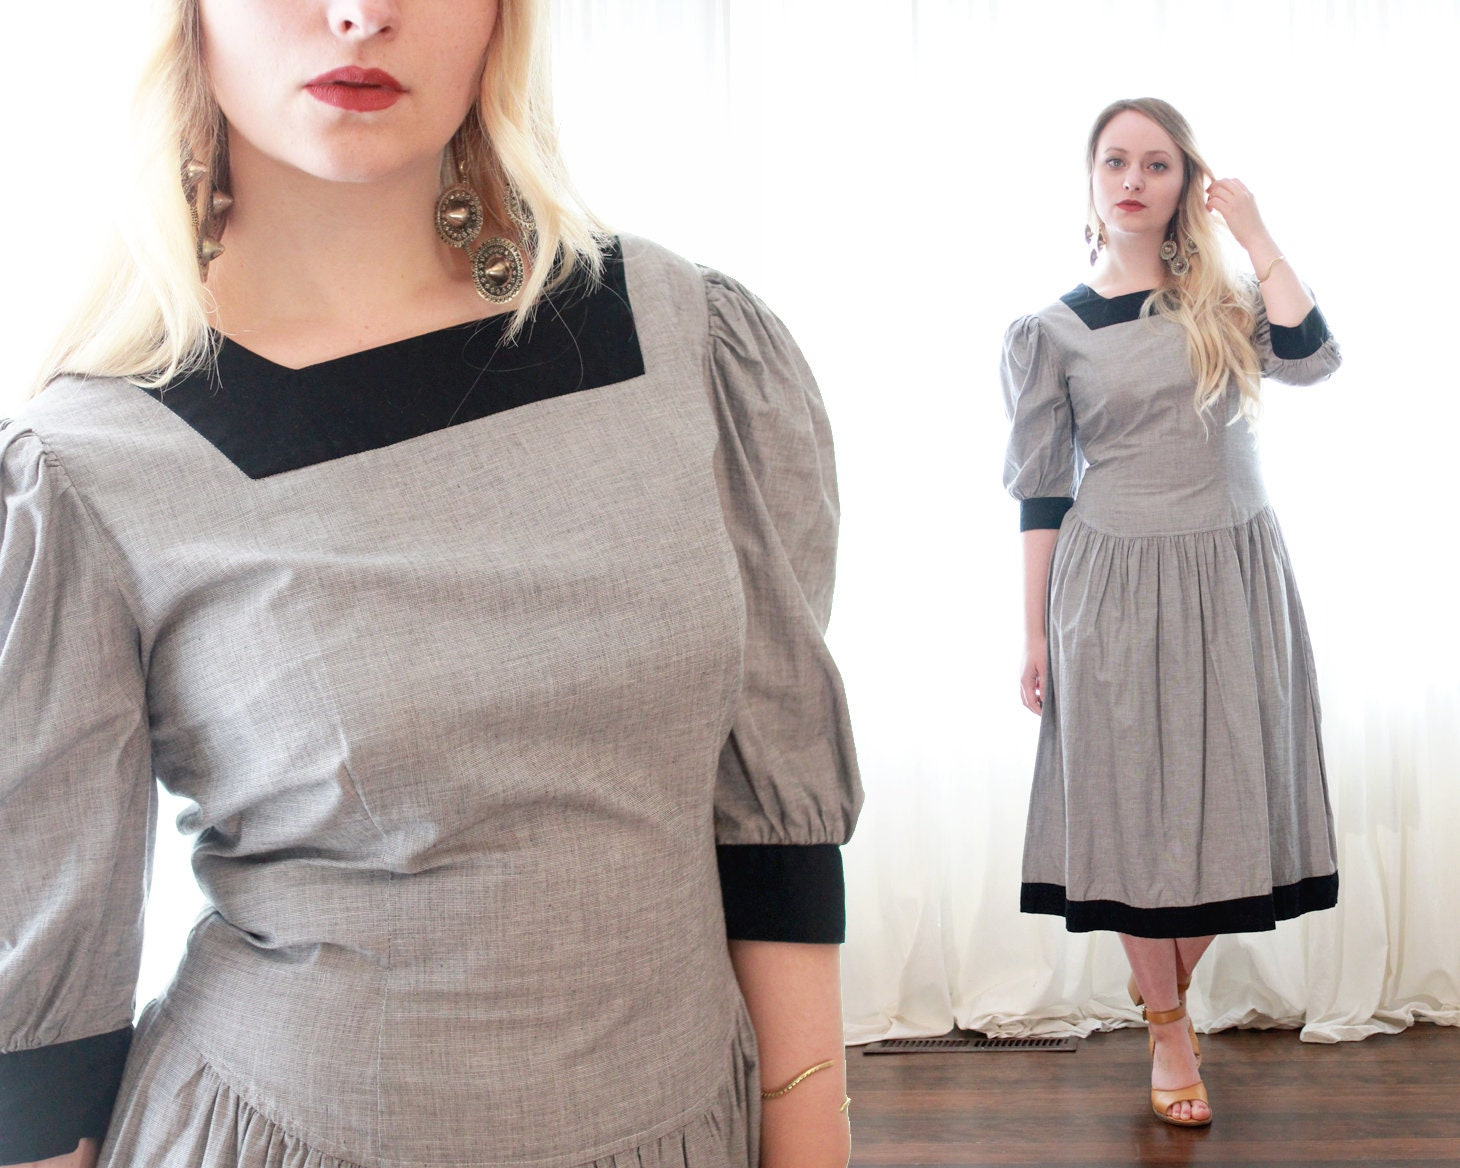 80s Dresses   Casual to Party Dresses Vintage 1980S Does 1910S Gray Black Woven Cotton Drop Waist Puffy Sleeve Midi Length Tea Dress $24.00 AT vintagedancer.com